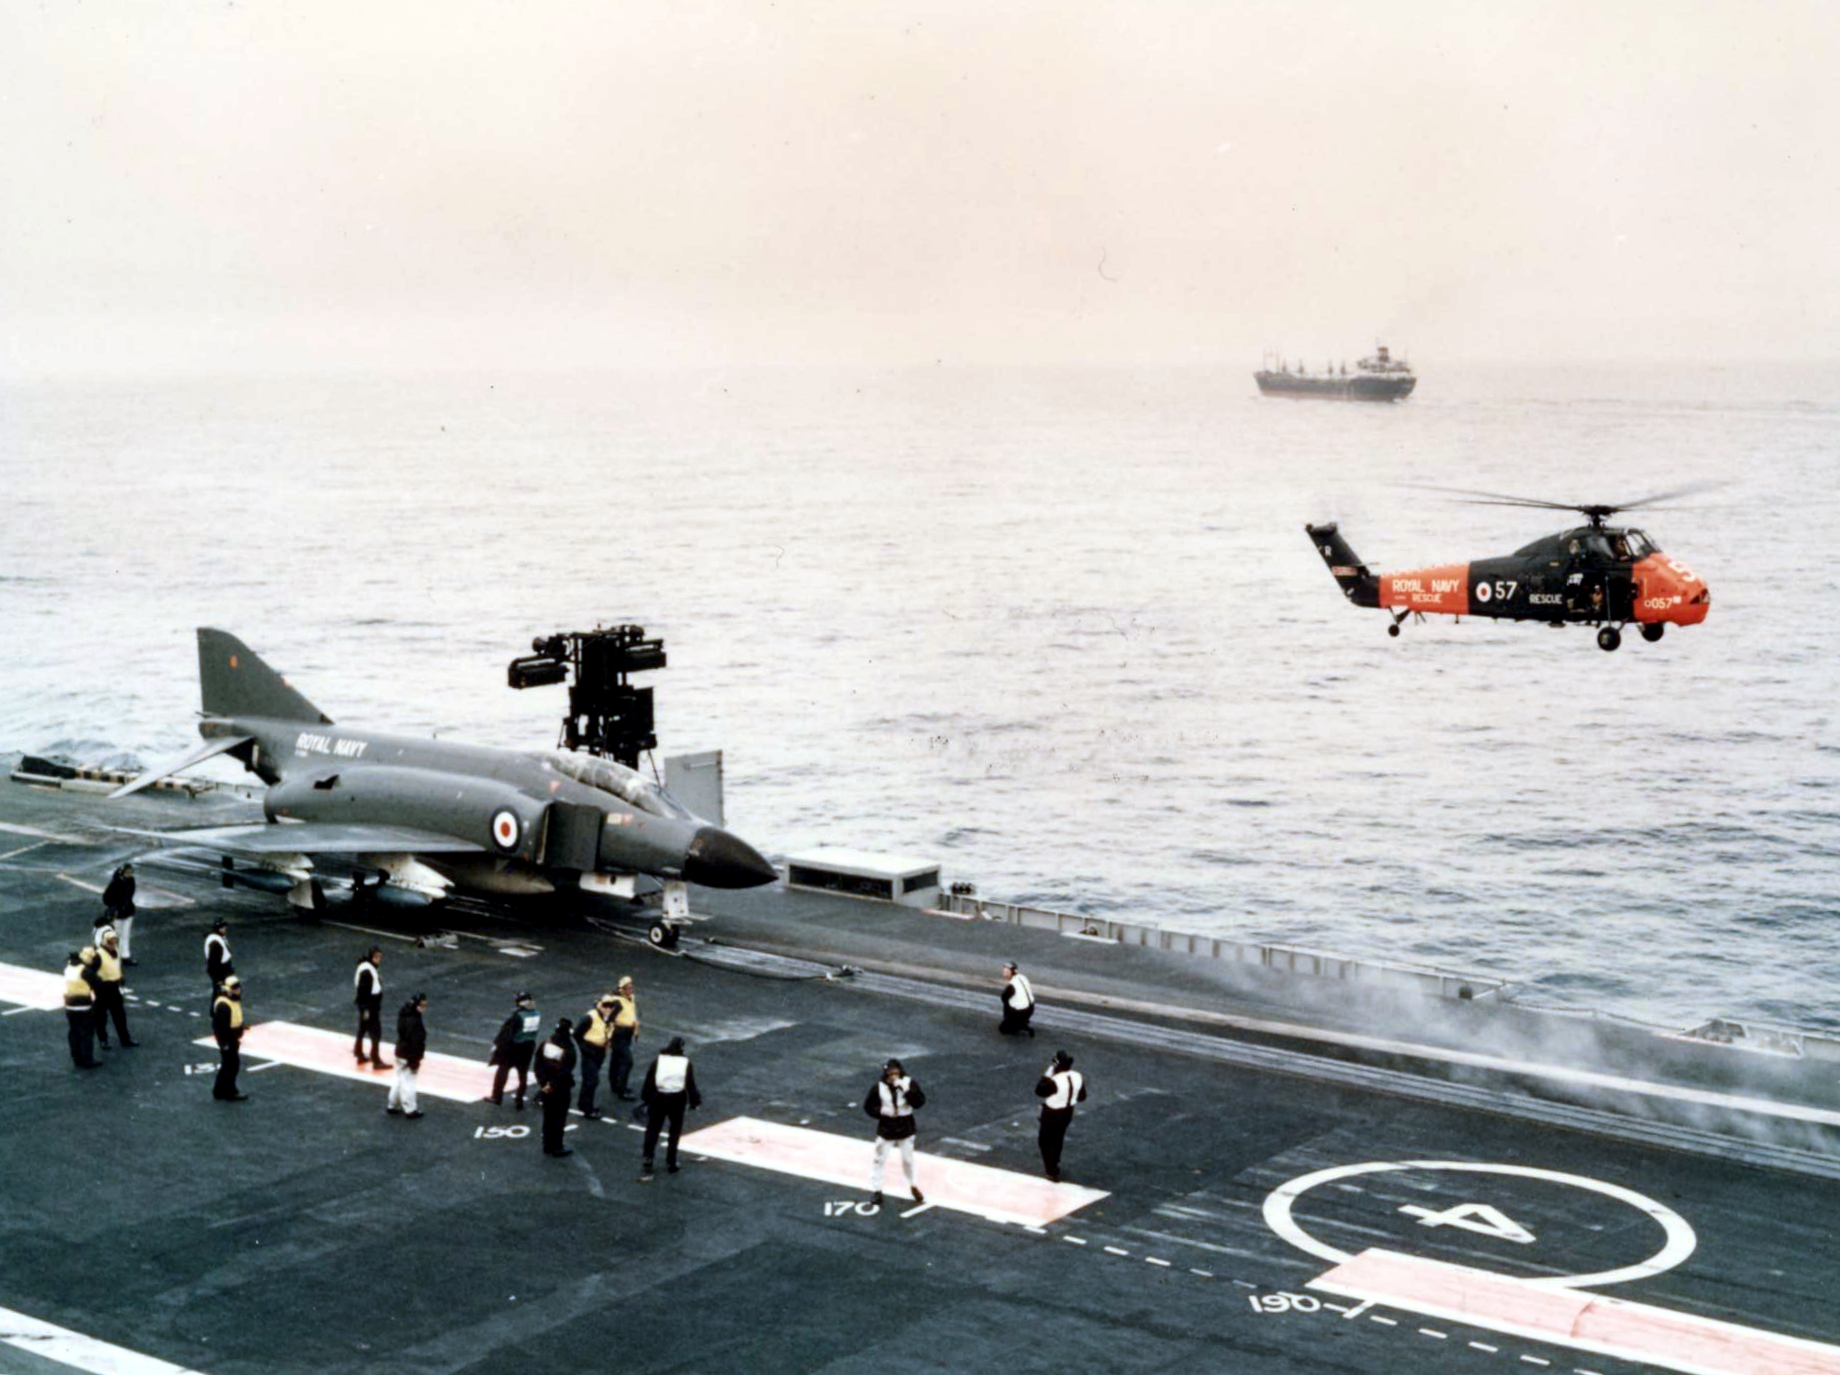 Phantom_FG.1_on_cat_of_HMS_Ark_Royal_(R09)_1970.jpg